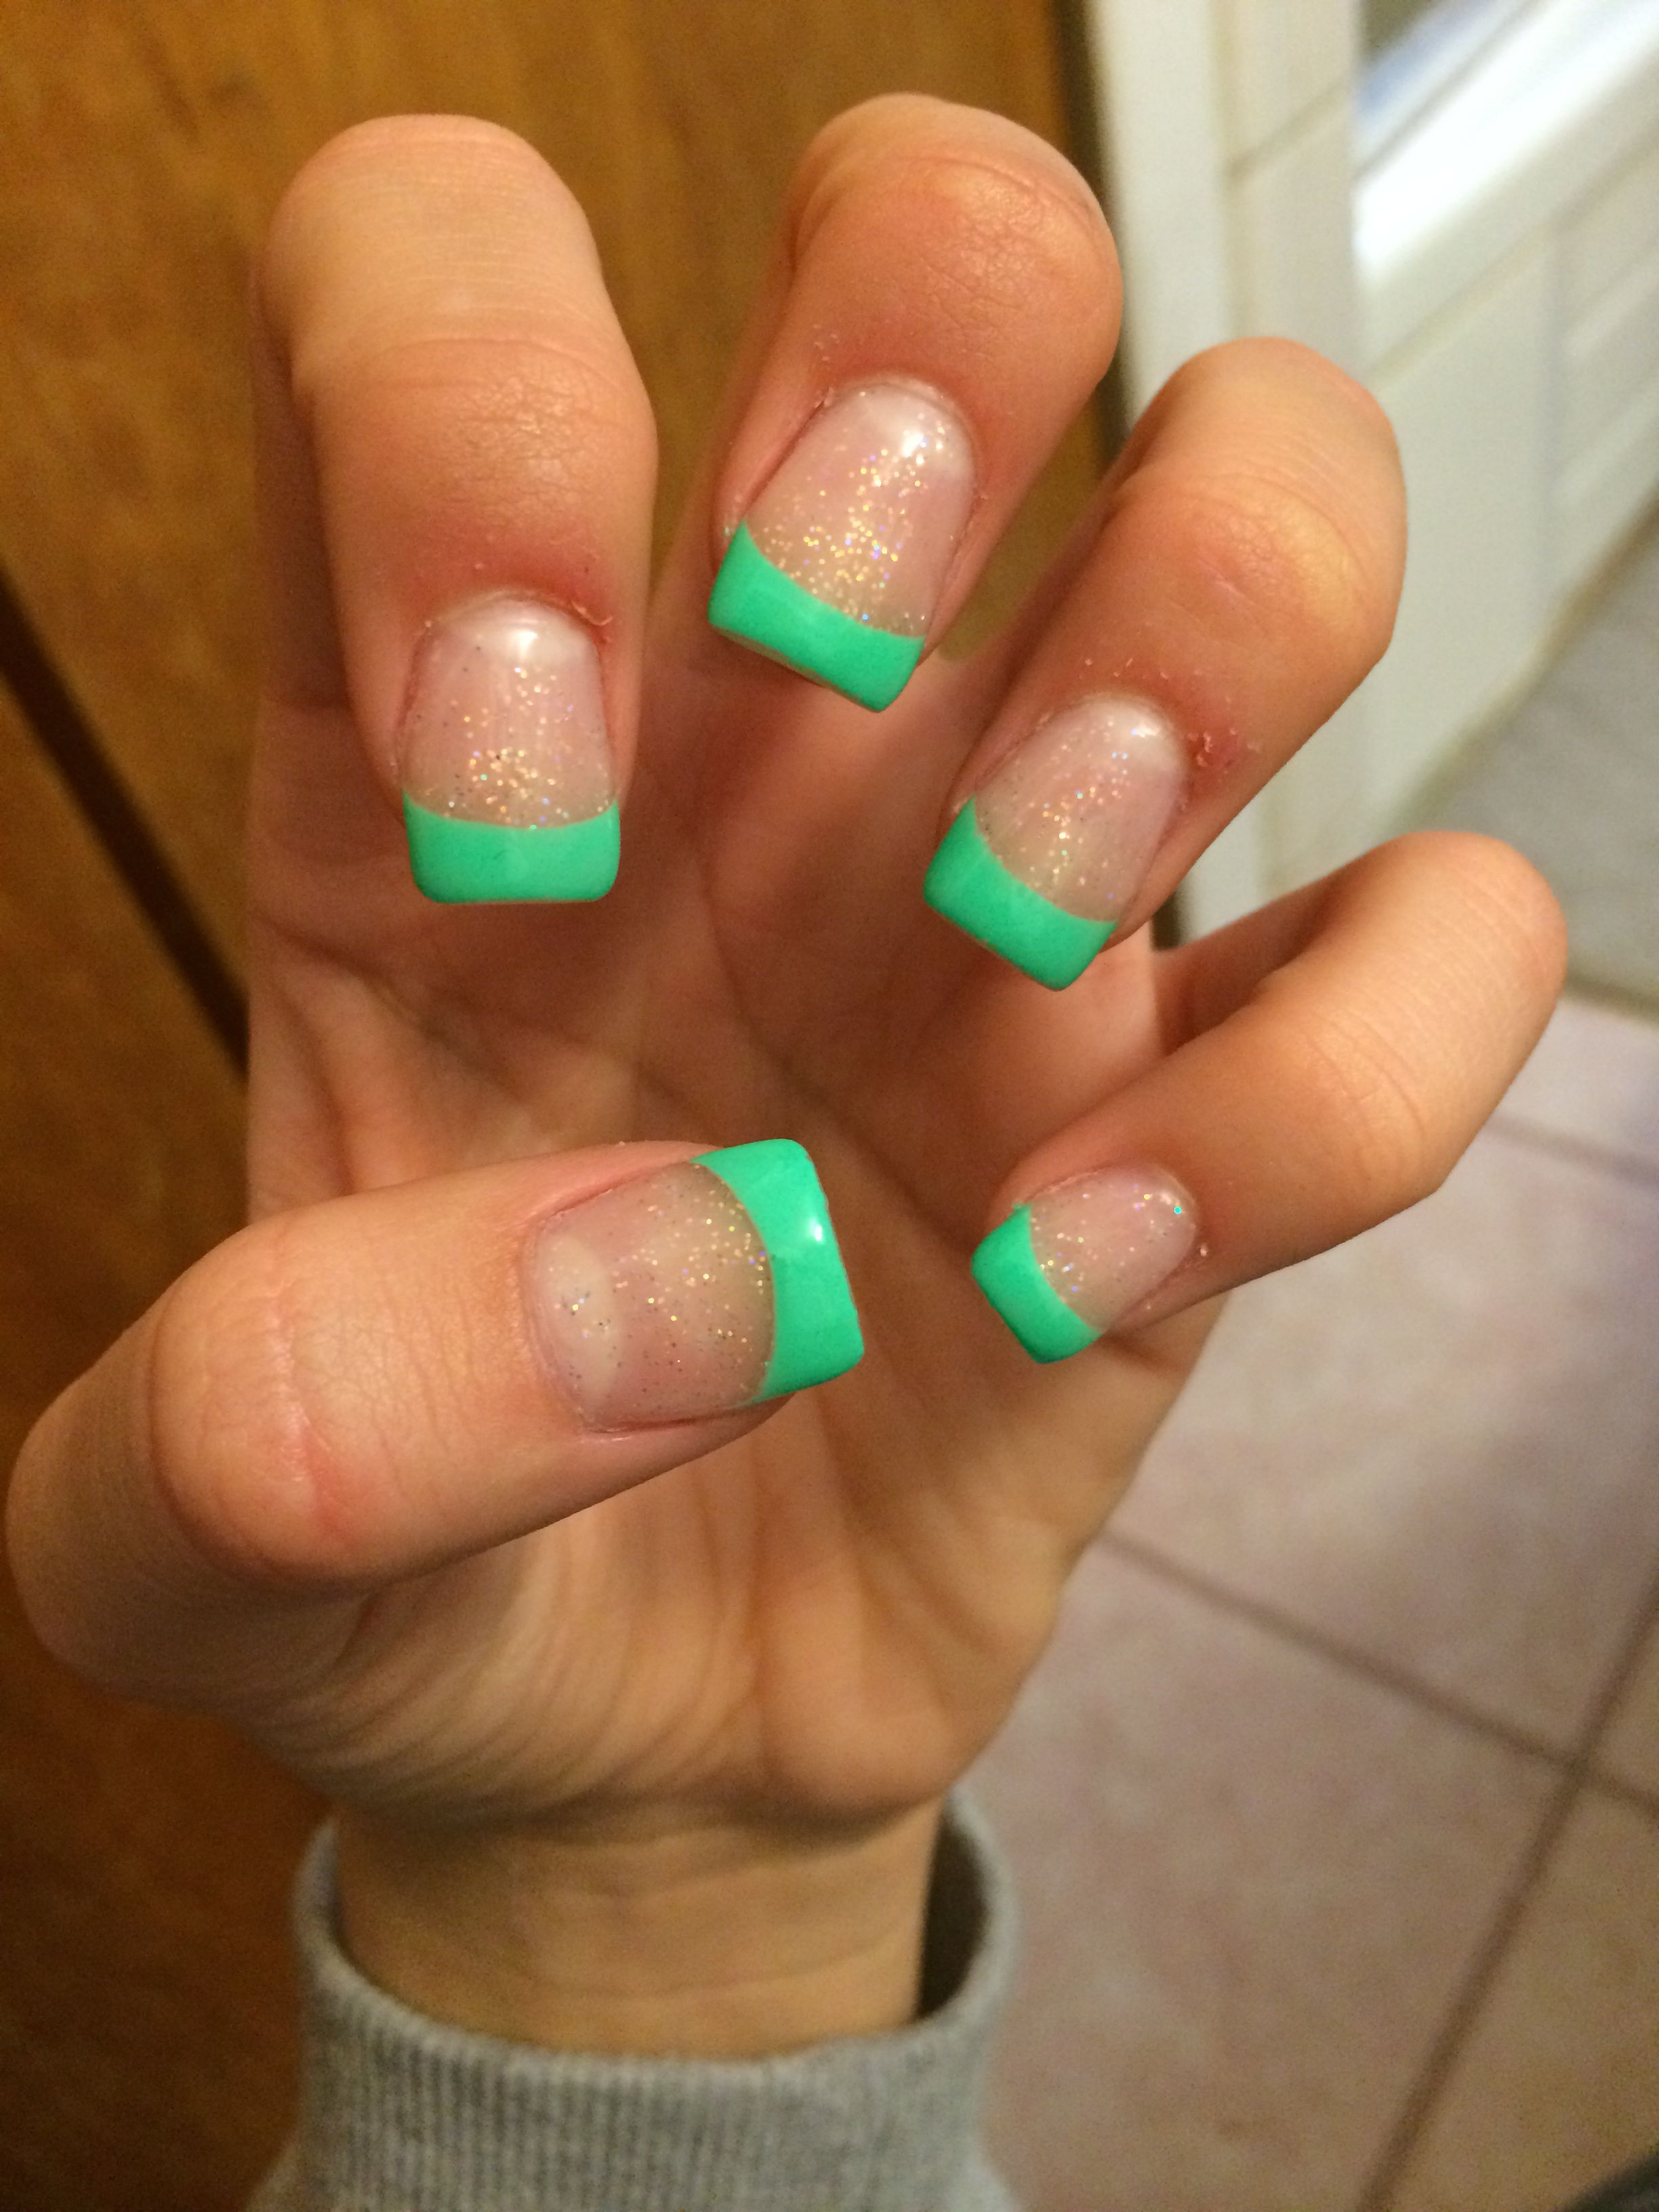 Shallic glitter with mint green tip acrylic nails   gel ...